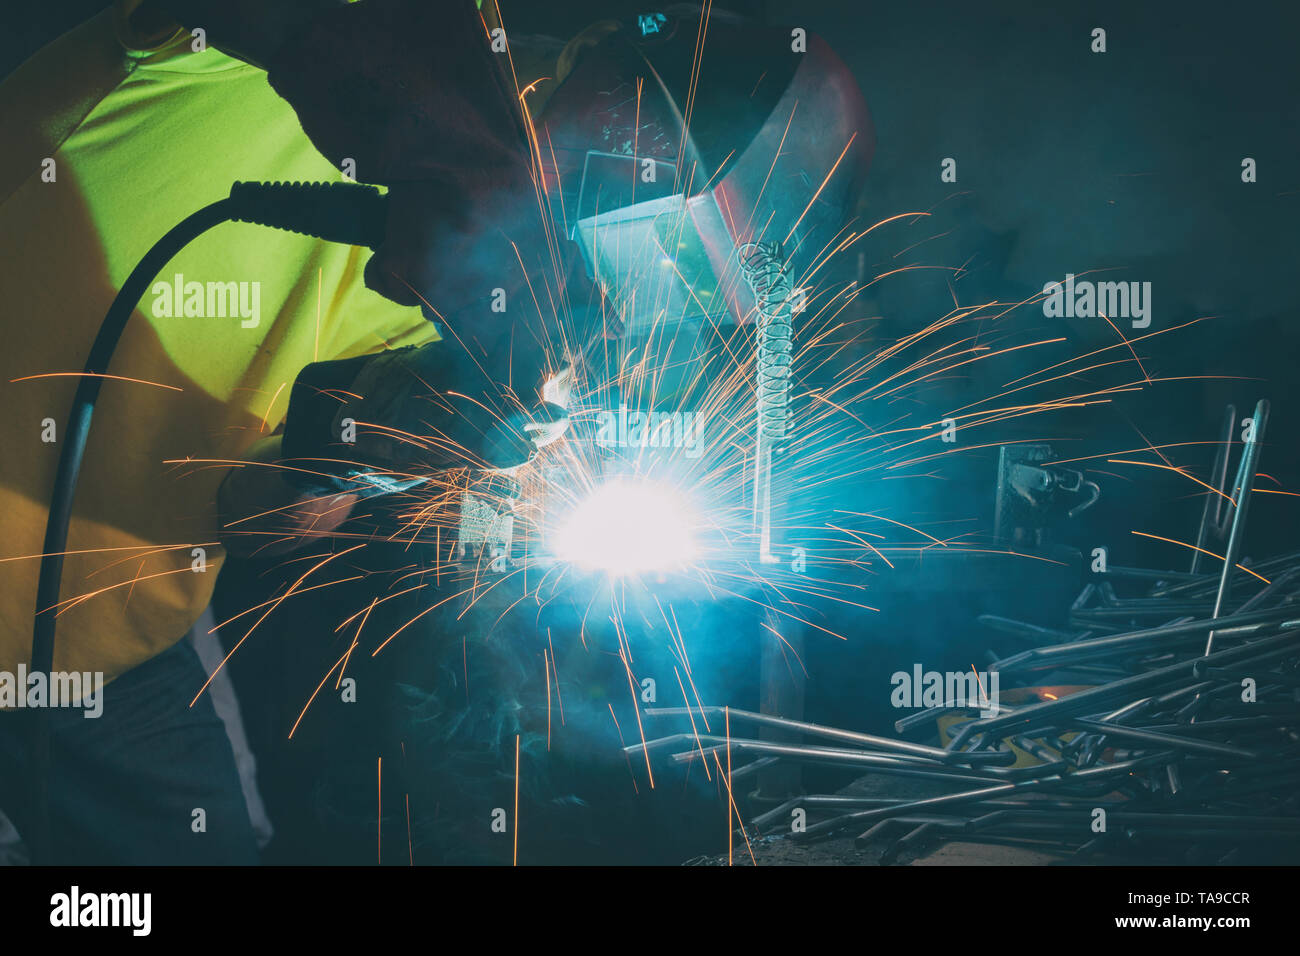 Industrial Worker at the factory or workshop welding steel elements Stock Photo